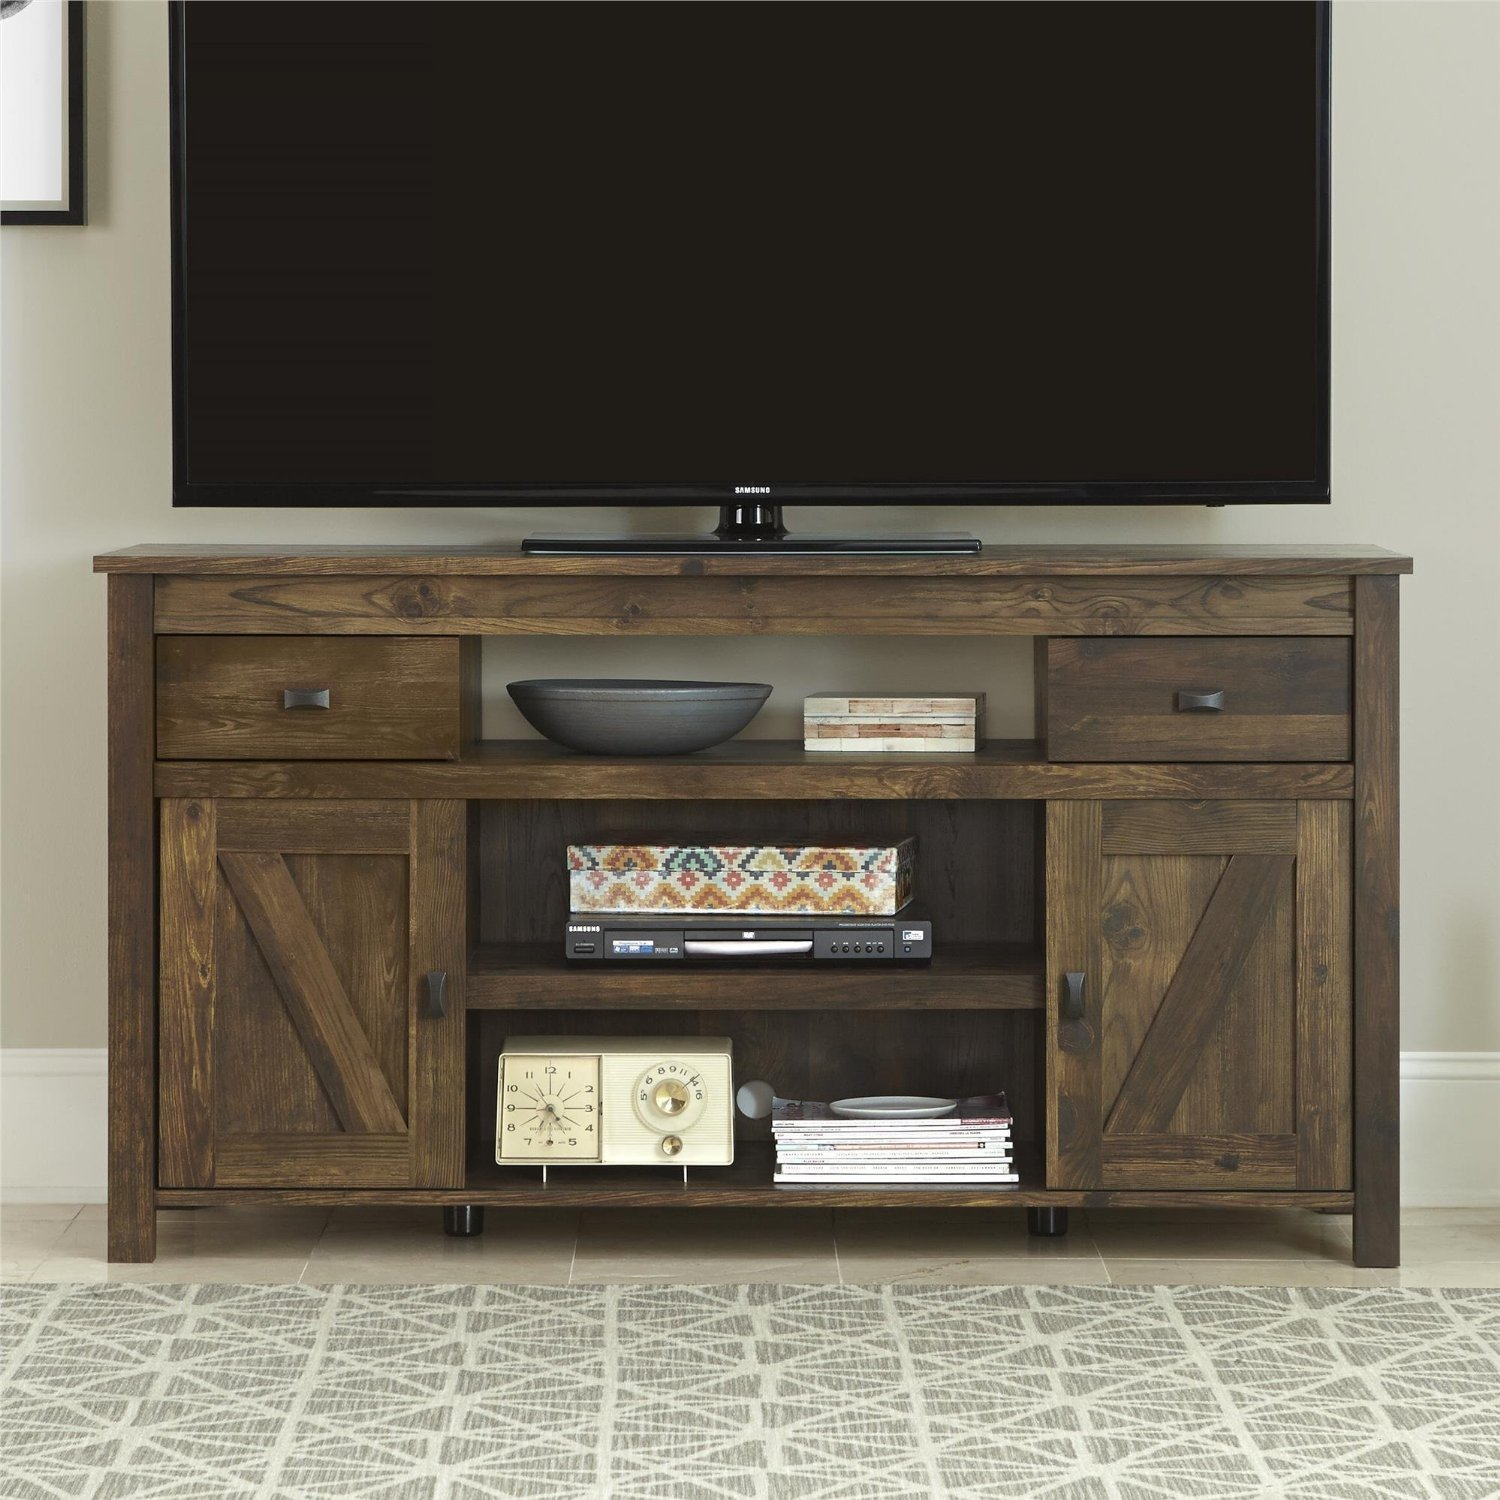 Cheap Tv Stand For 64 Inch Tv Find Tv Stand For 64 Inch Tv Deals On